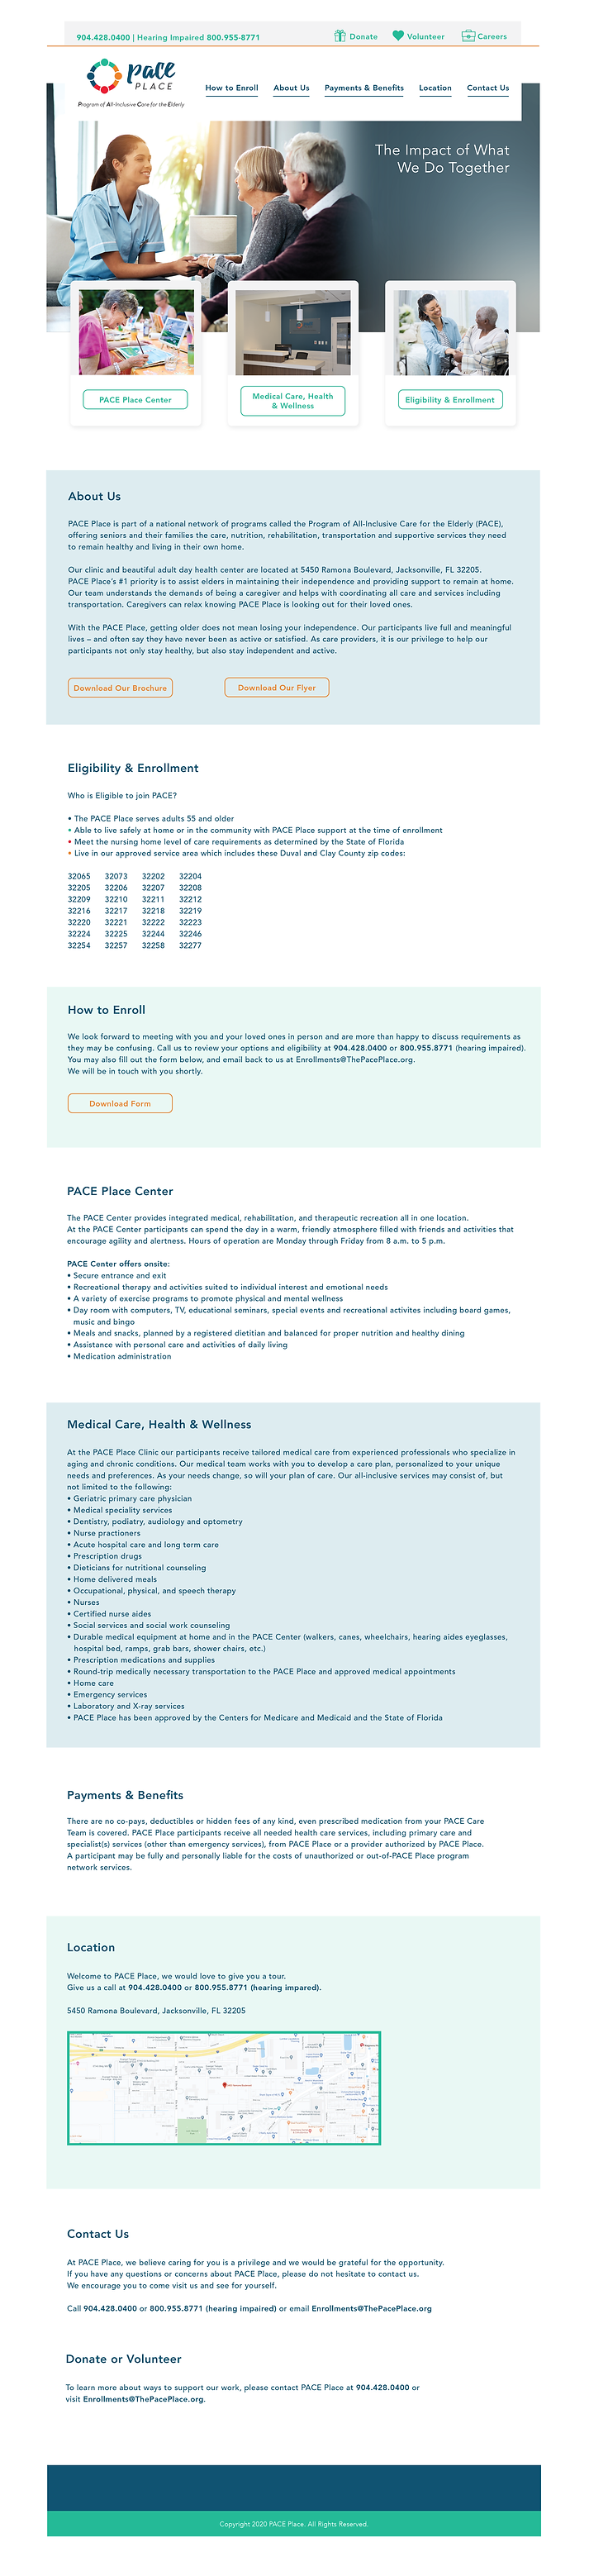 PCE 001 - Approved Landing Page.png